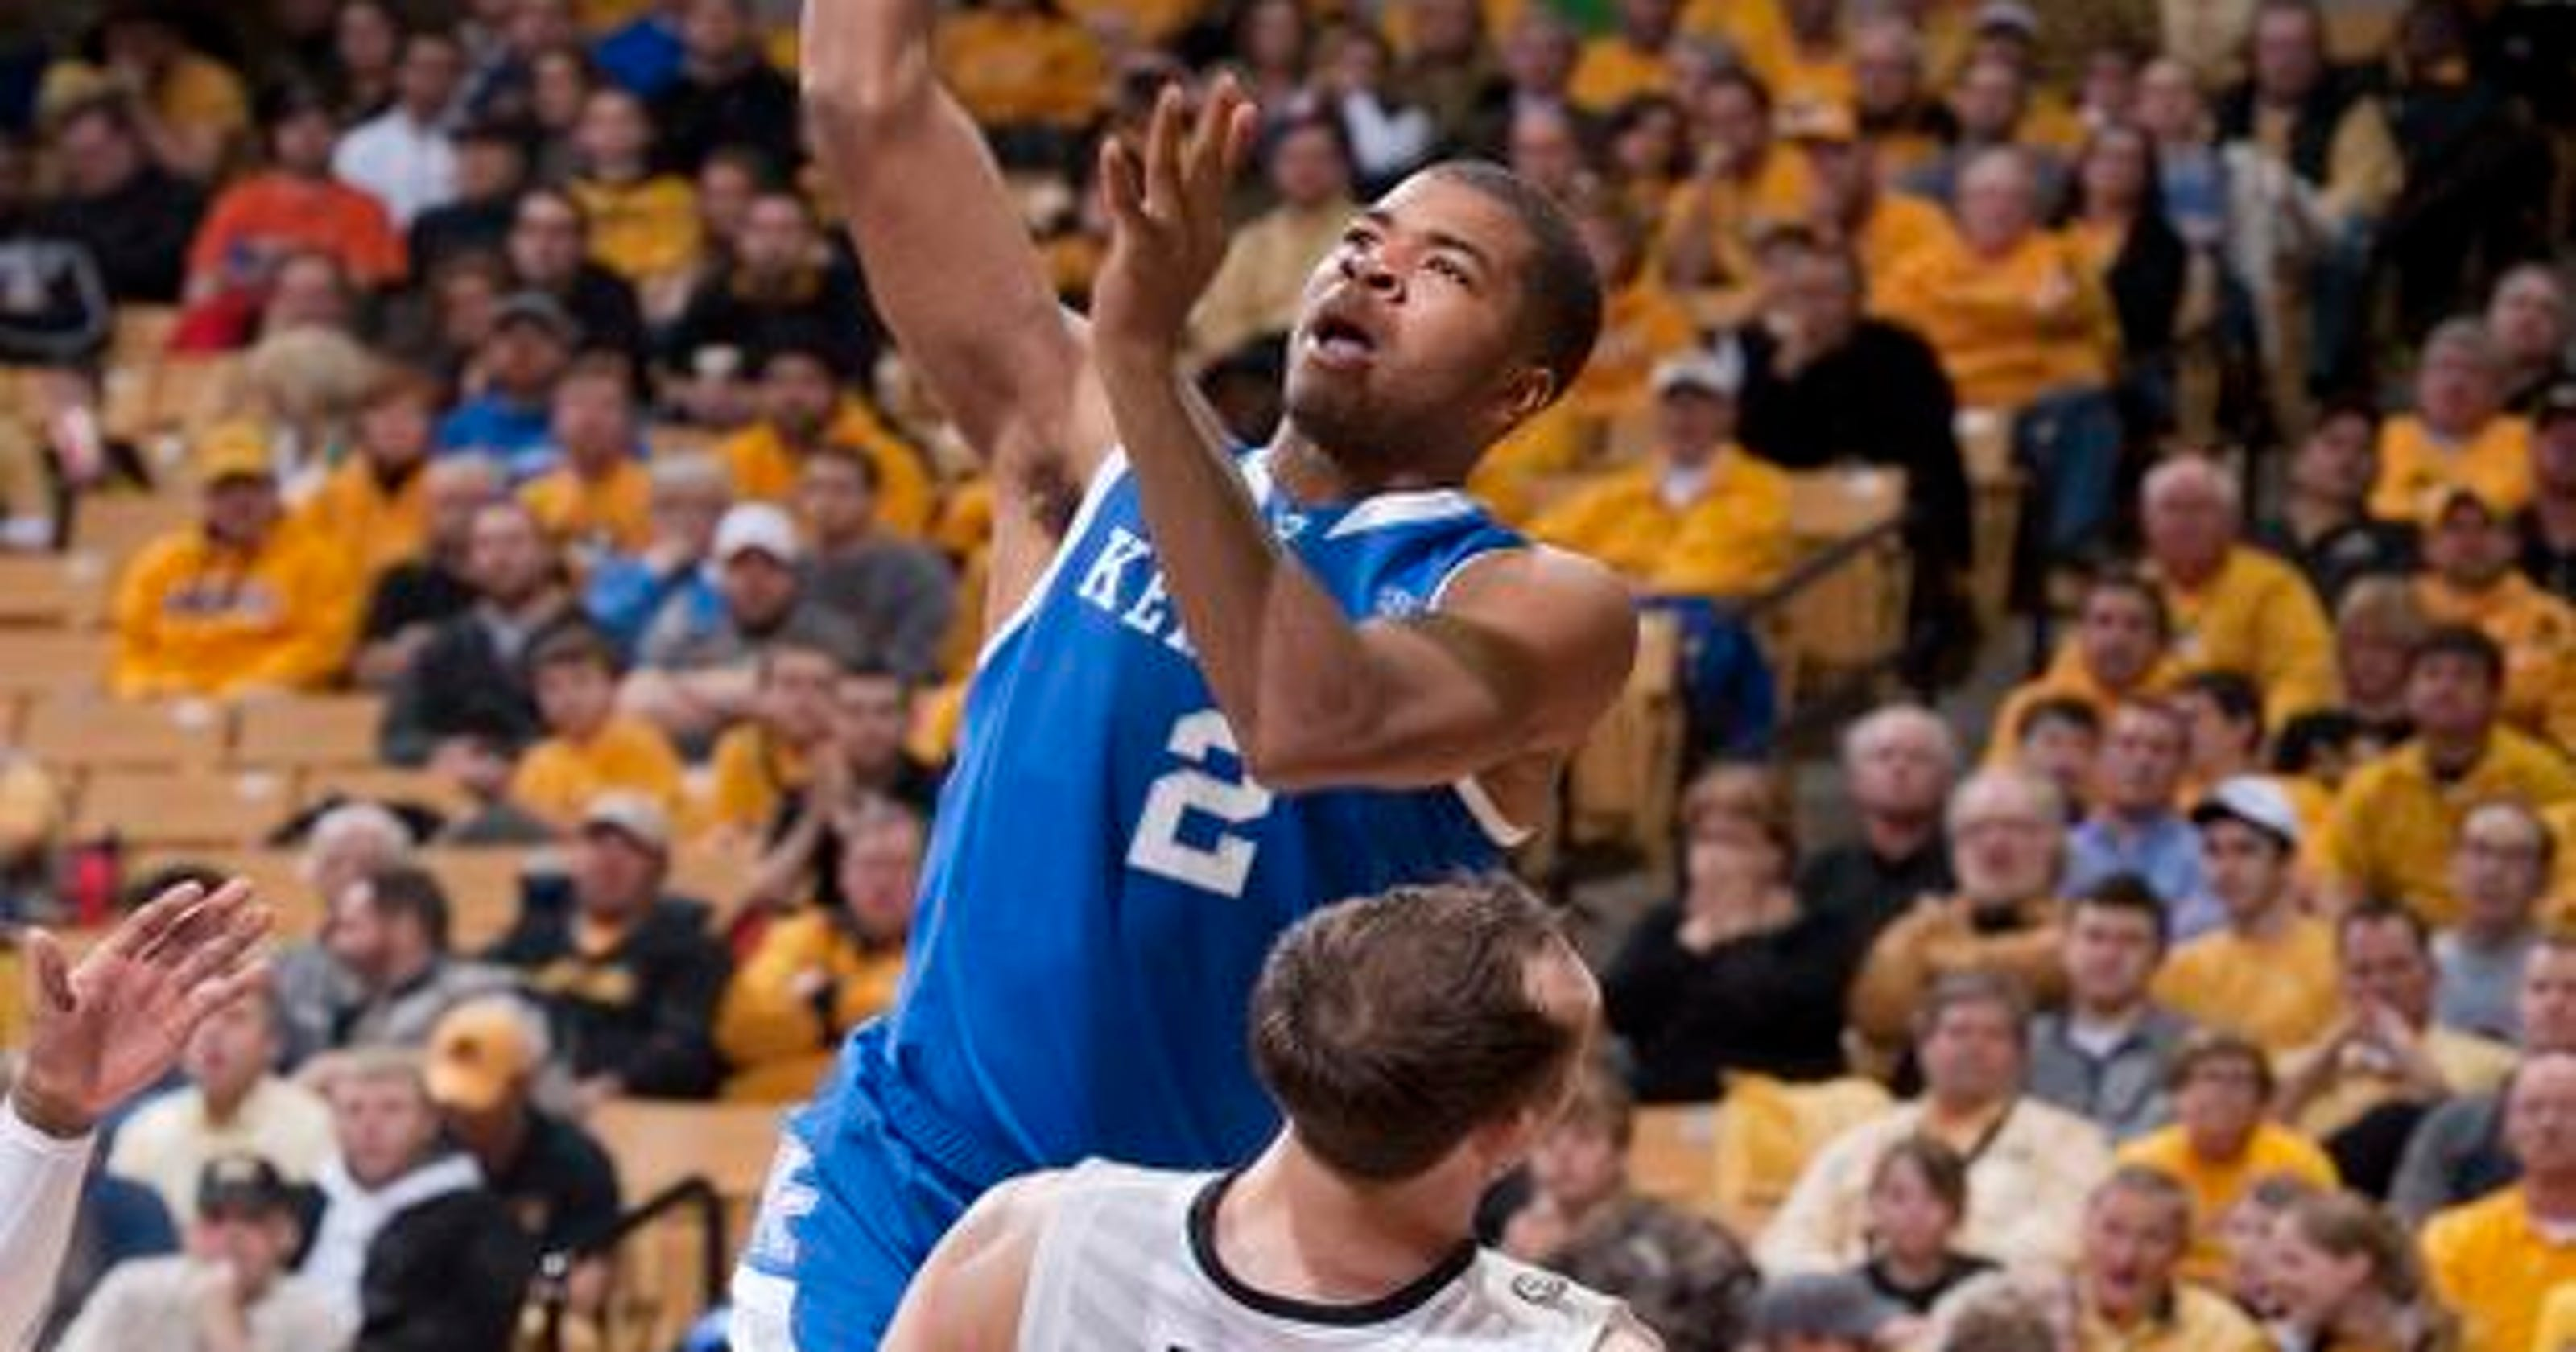 Kentucky basketball withstands furious Missouri rally to win